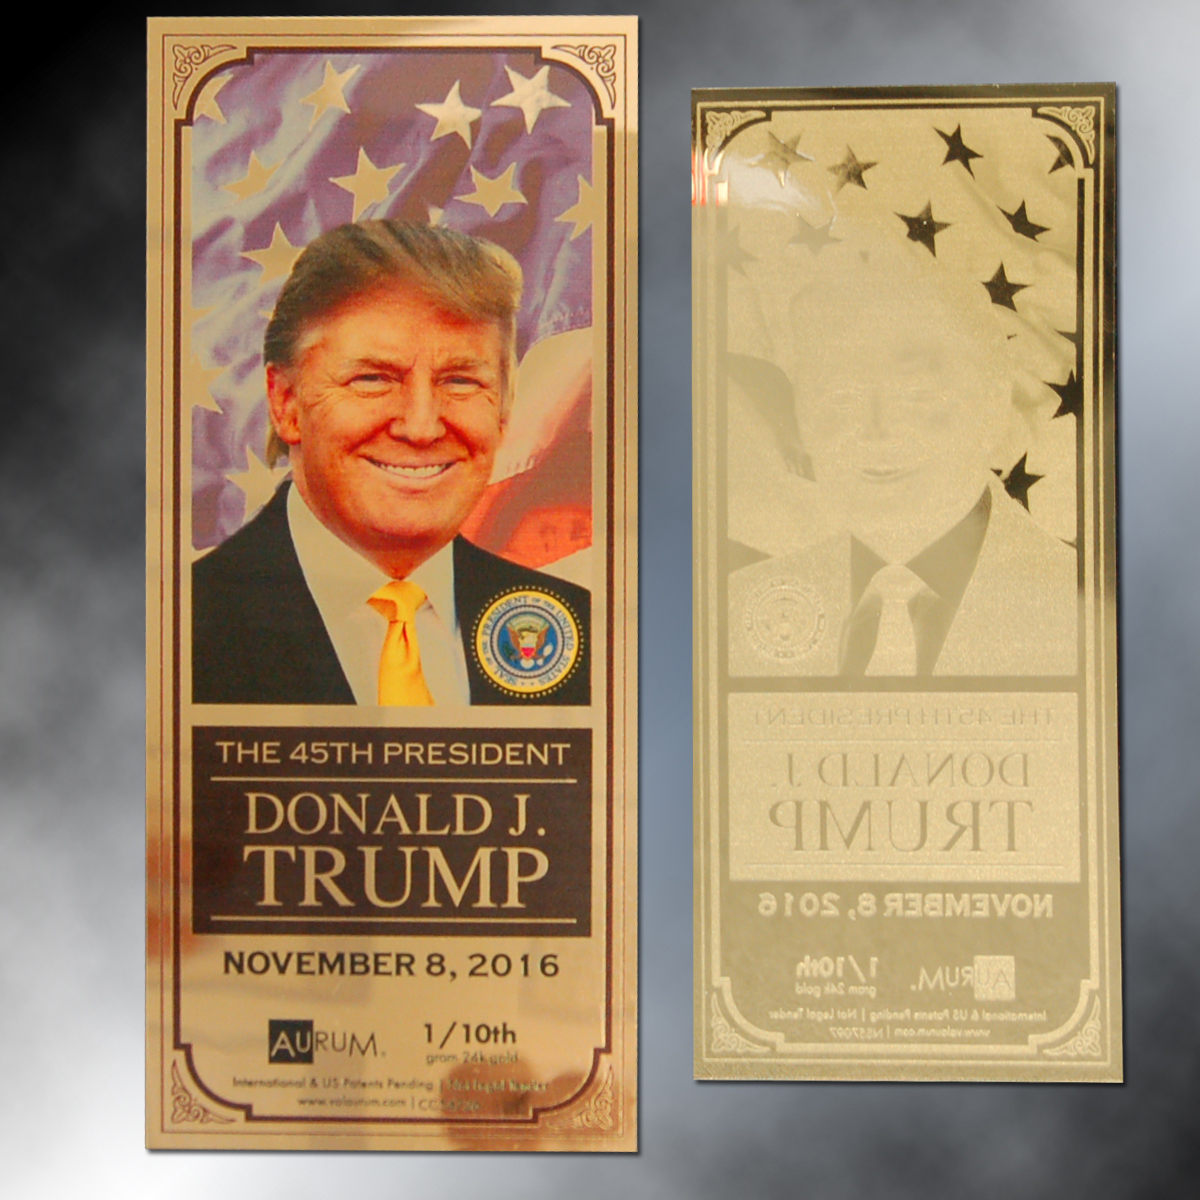 Donald Trump 45th President 1/10th Gram 24K Gold Aurum Note